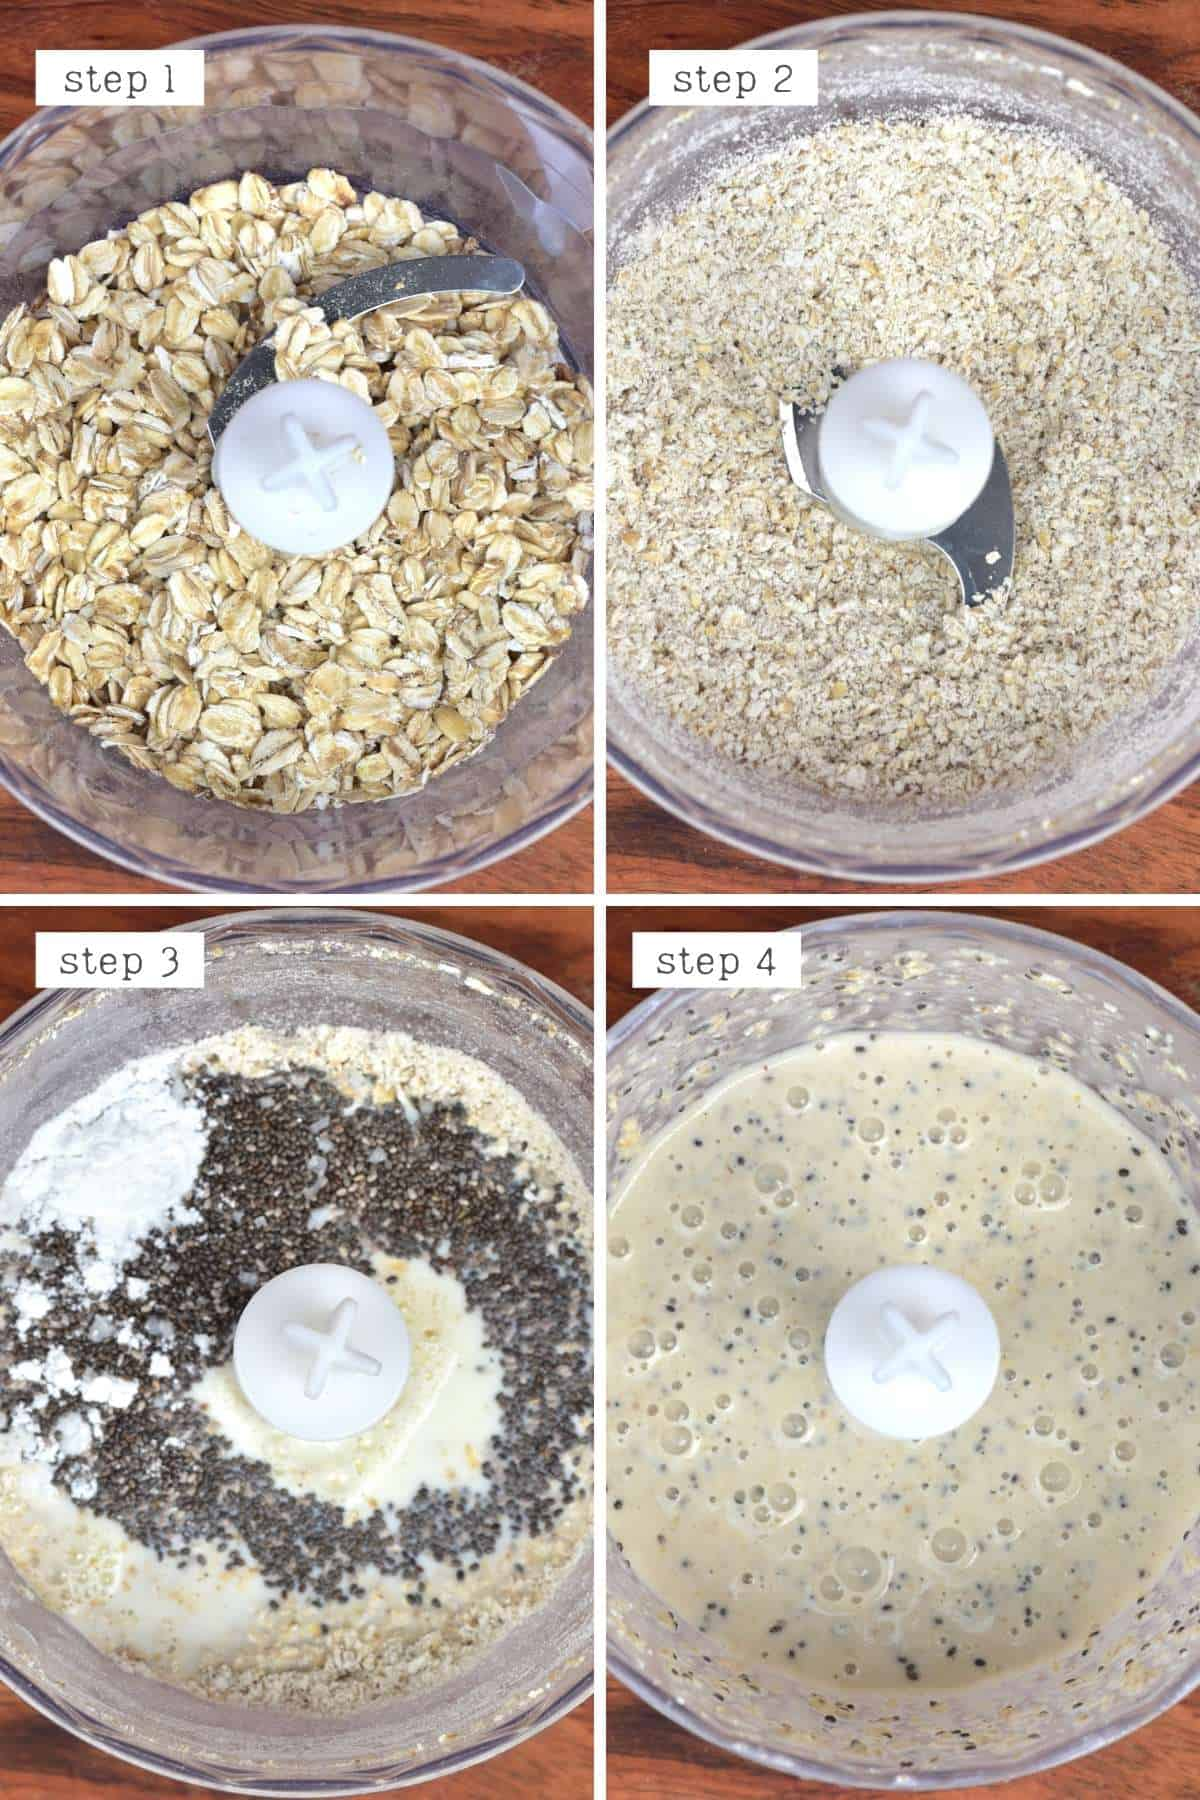 Steps for making vanilla chocolate baked oats